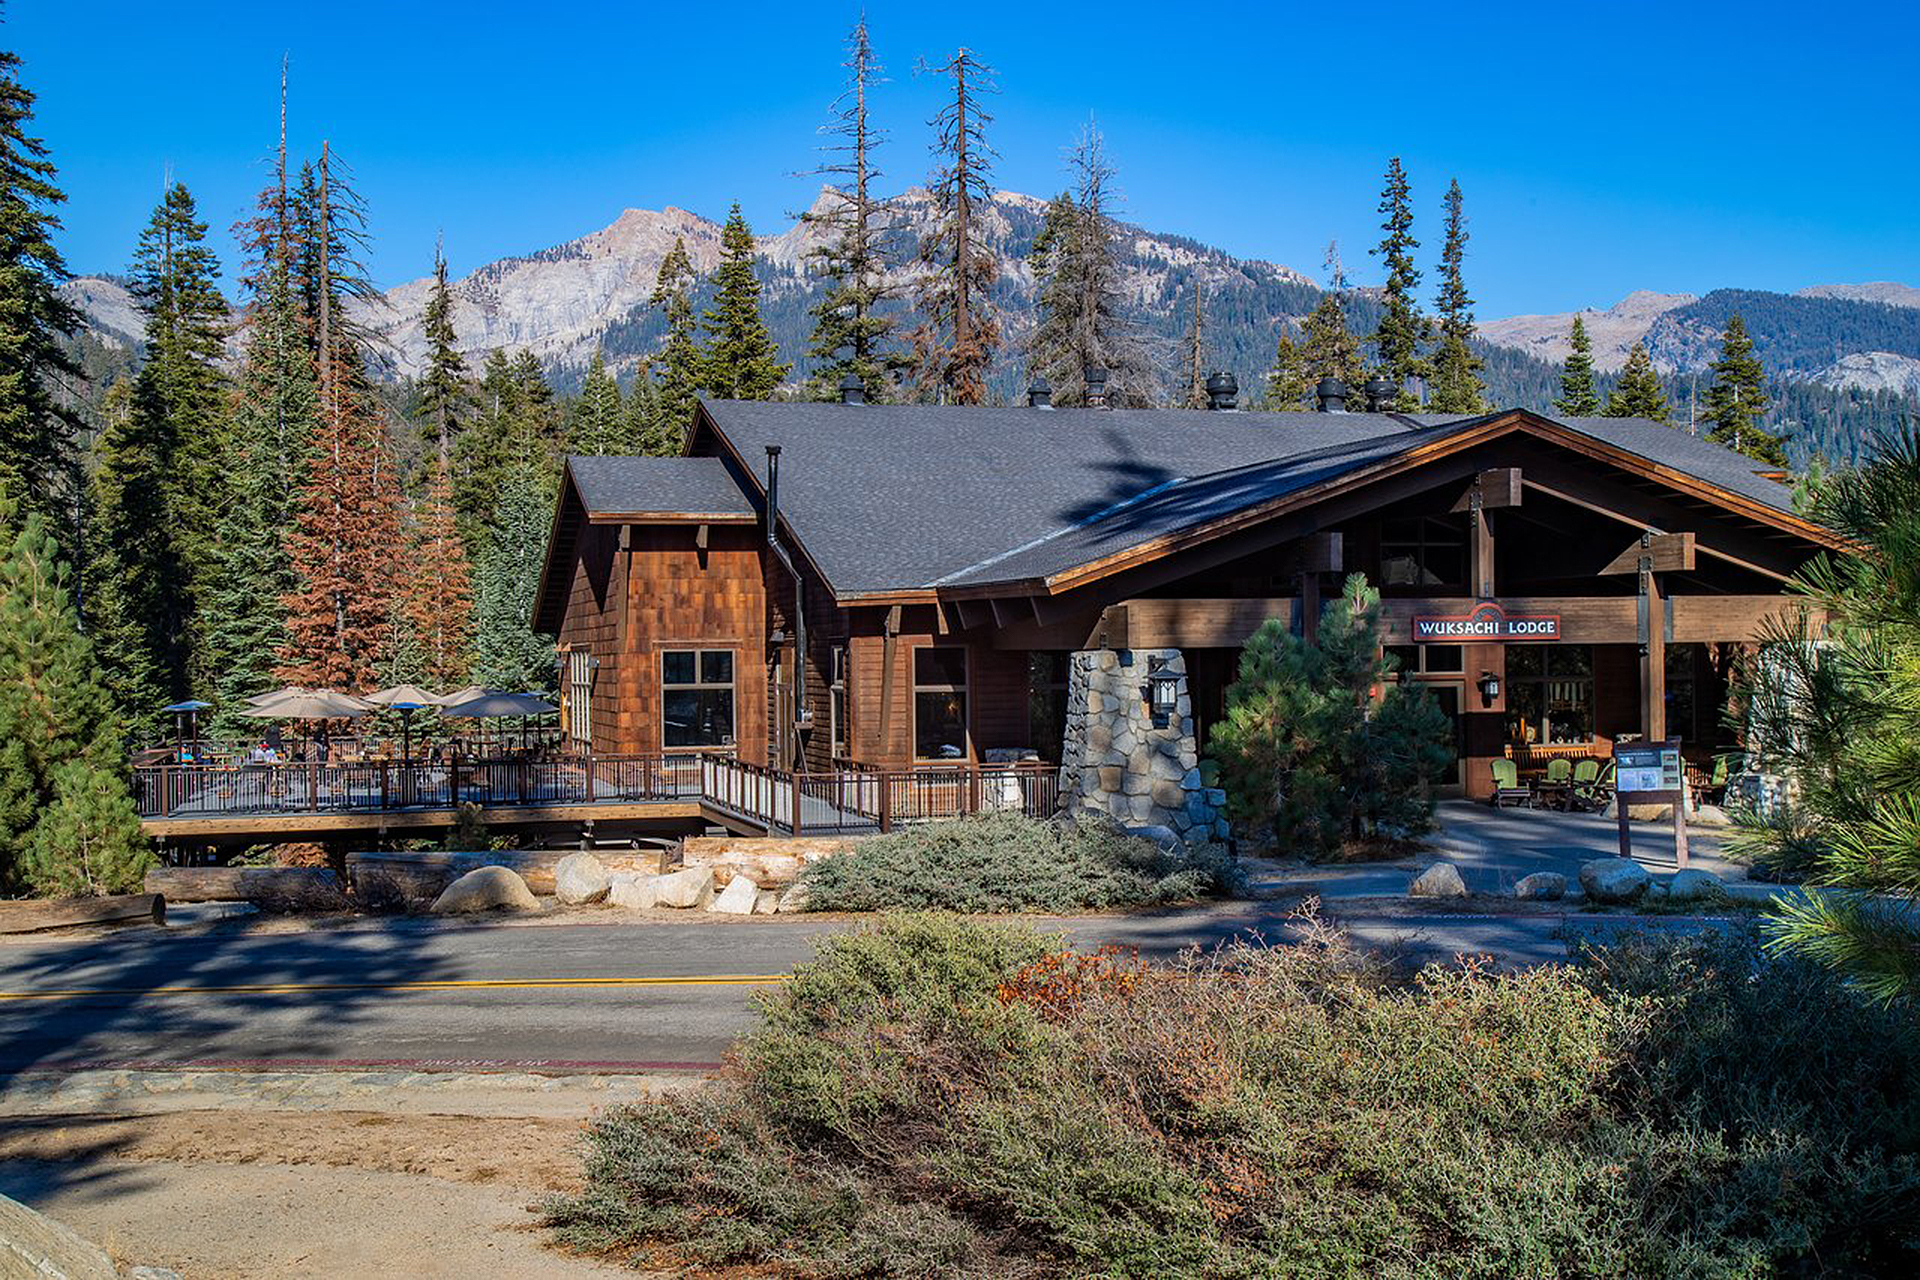 Wuksachi Lodge in Sequoia and Kings Canyon National Park; Courtesy of Wuksachi Lodge